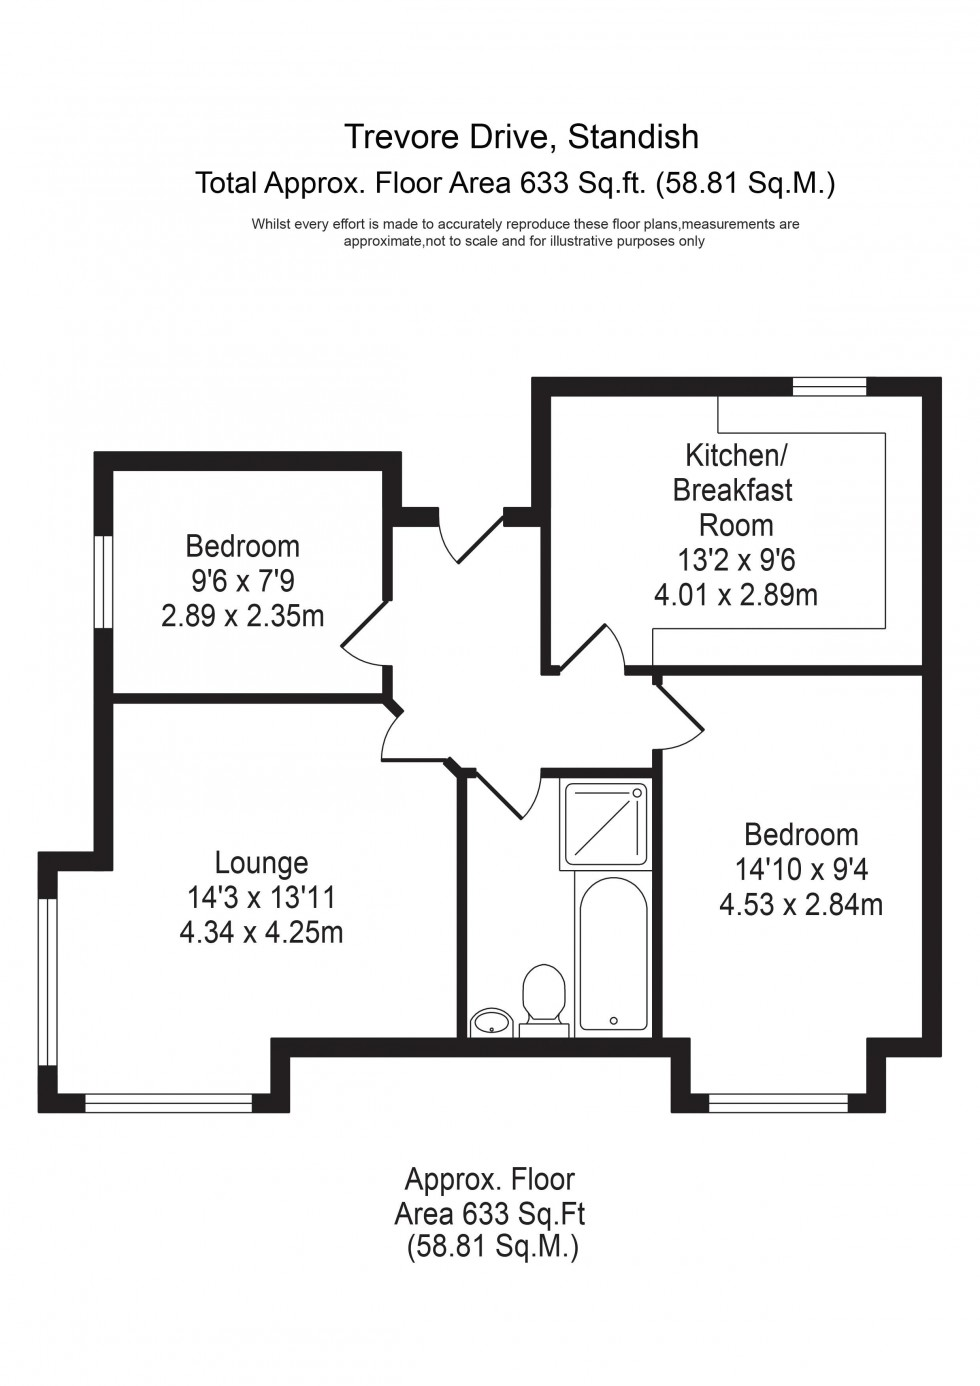 Floorplan for Trevore Drive, Standish